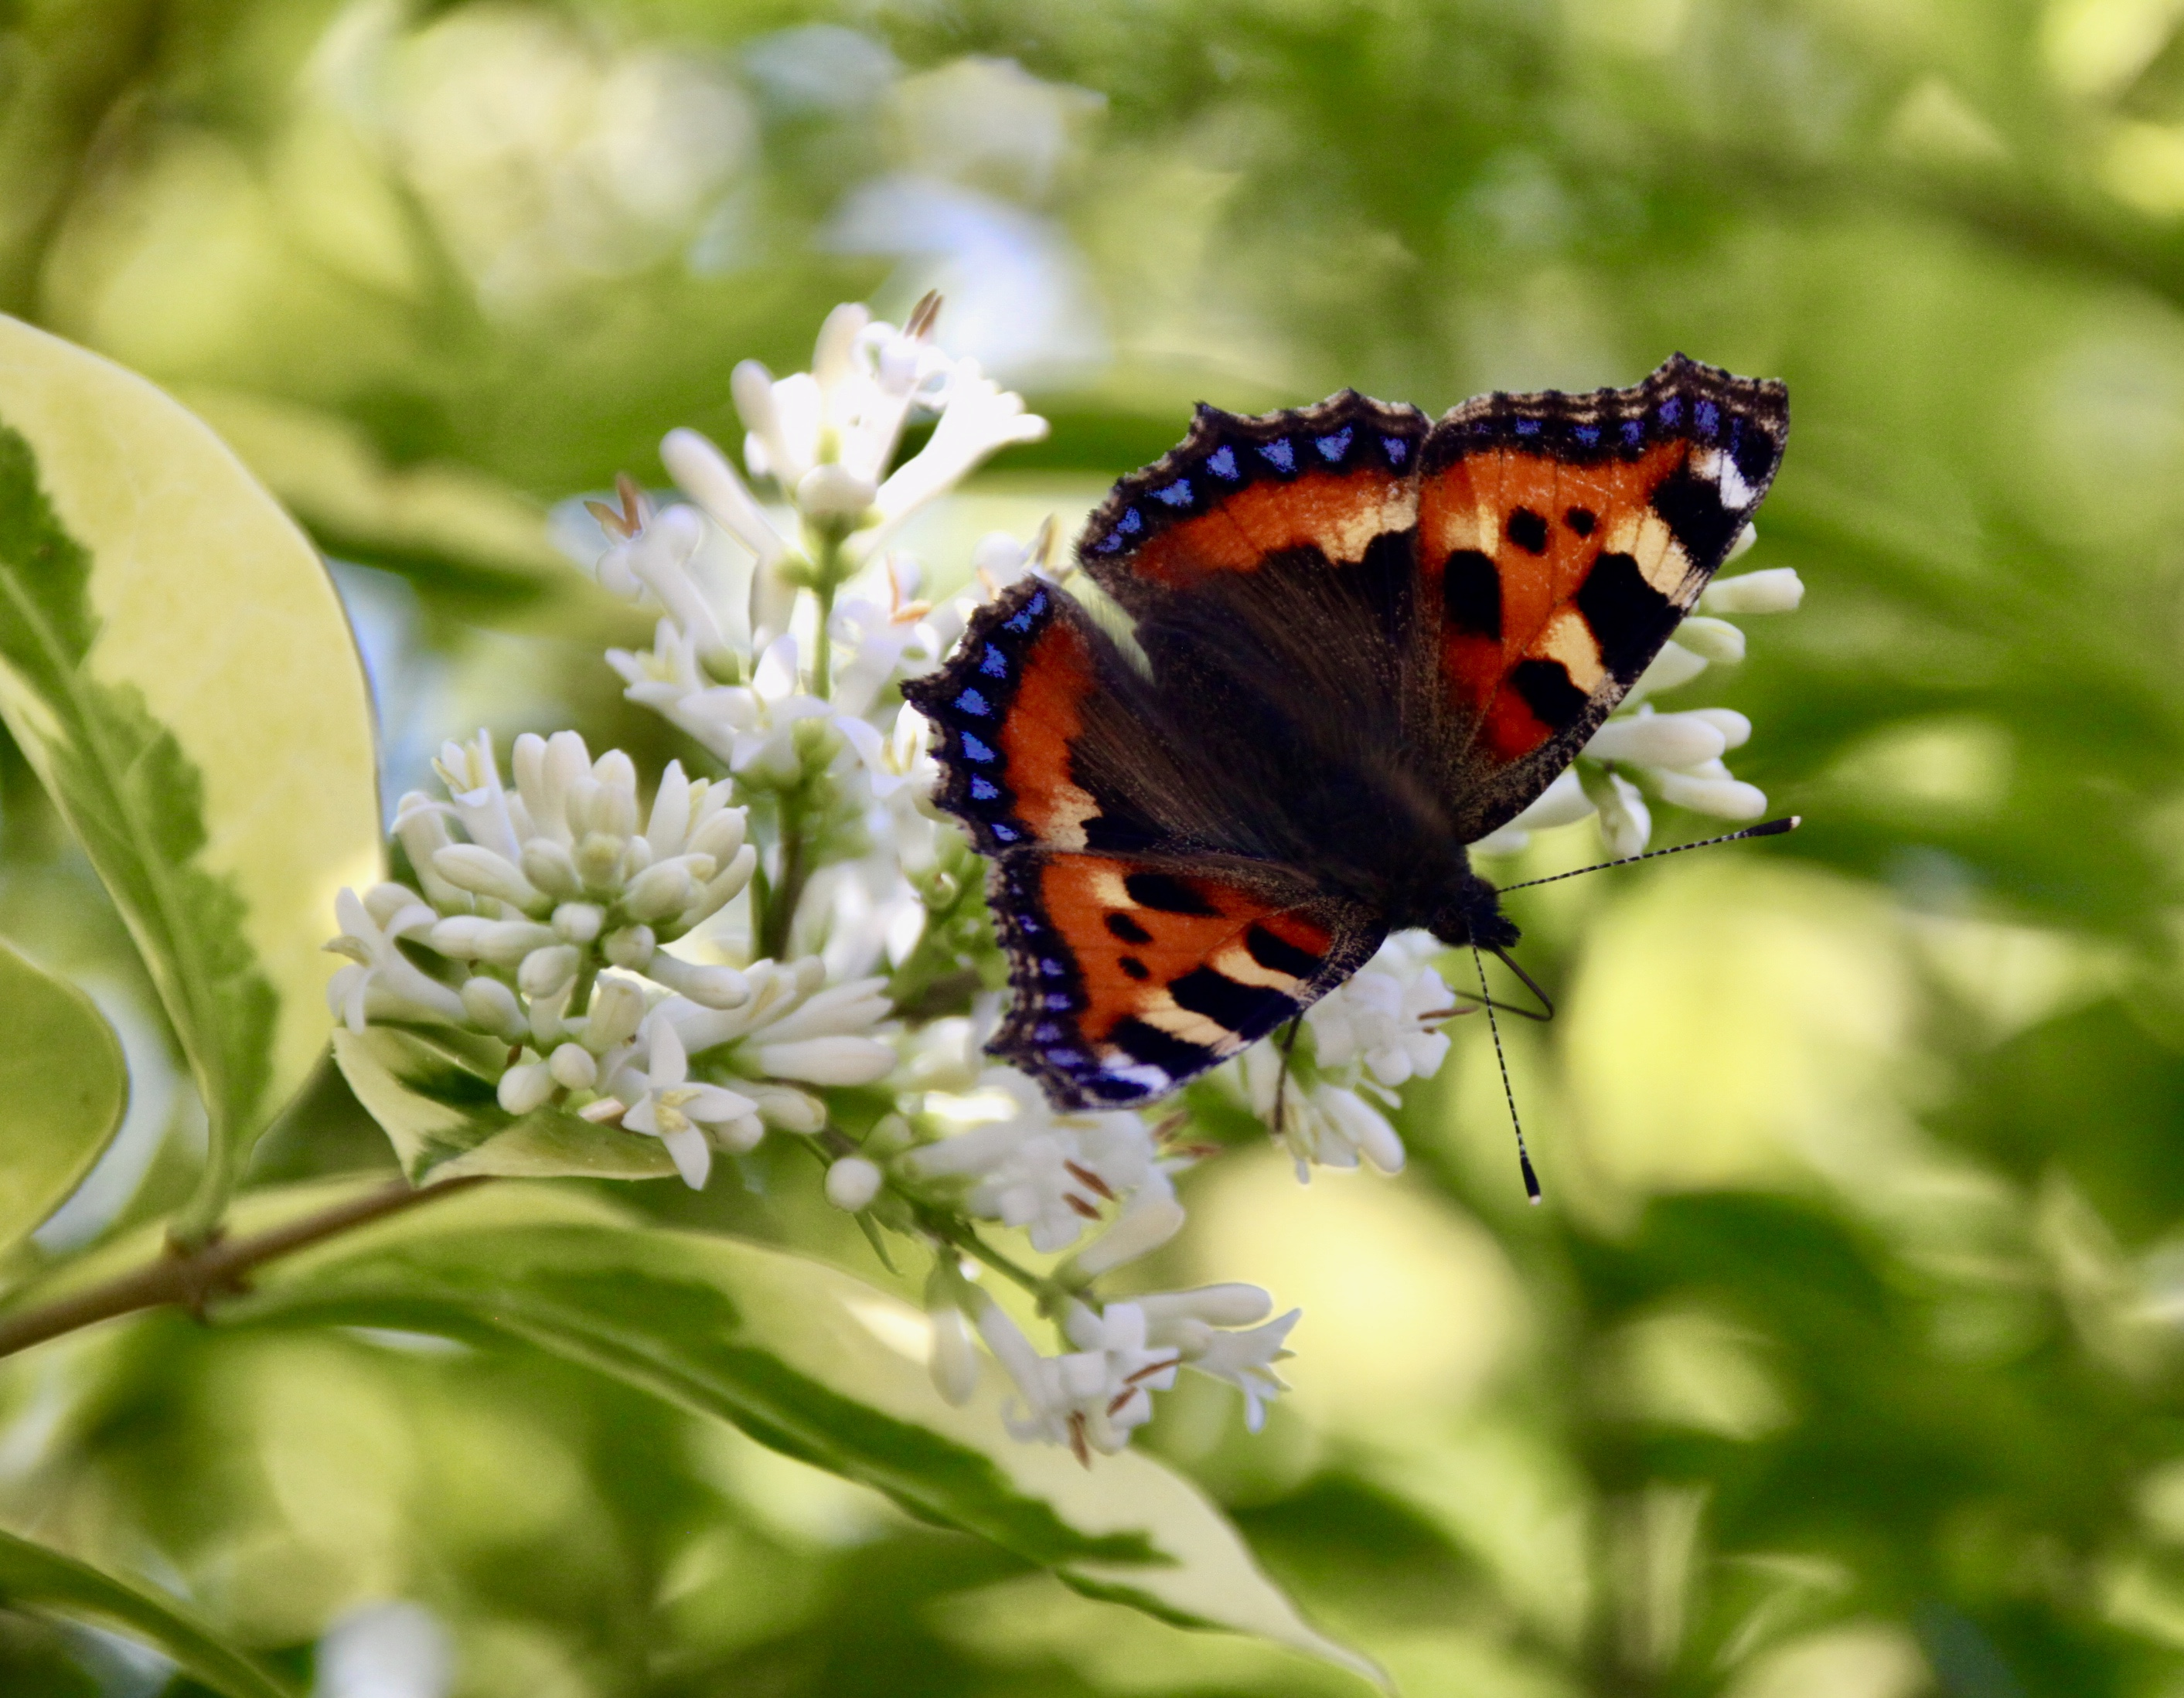 The small tortoiseshell butterfly by Jez Braithwaite